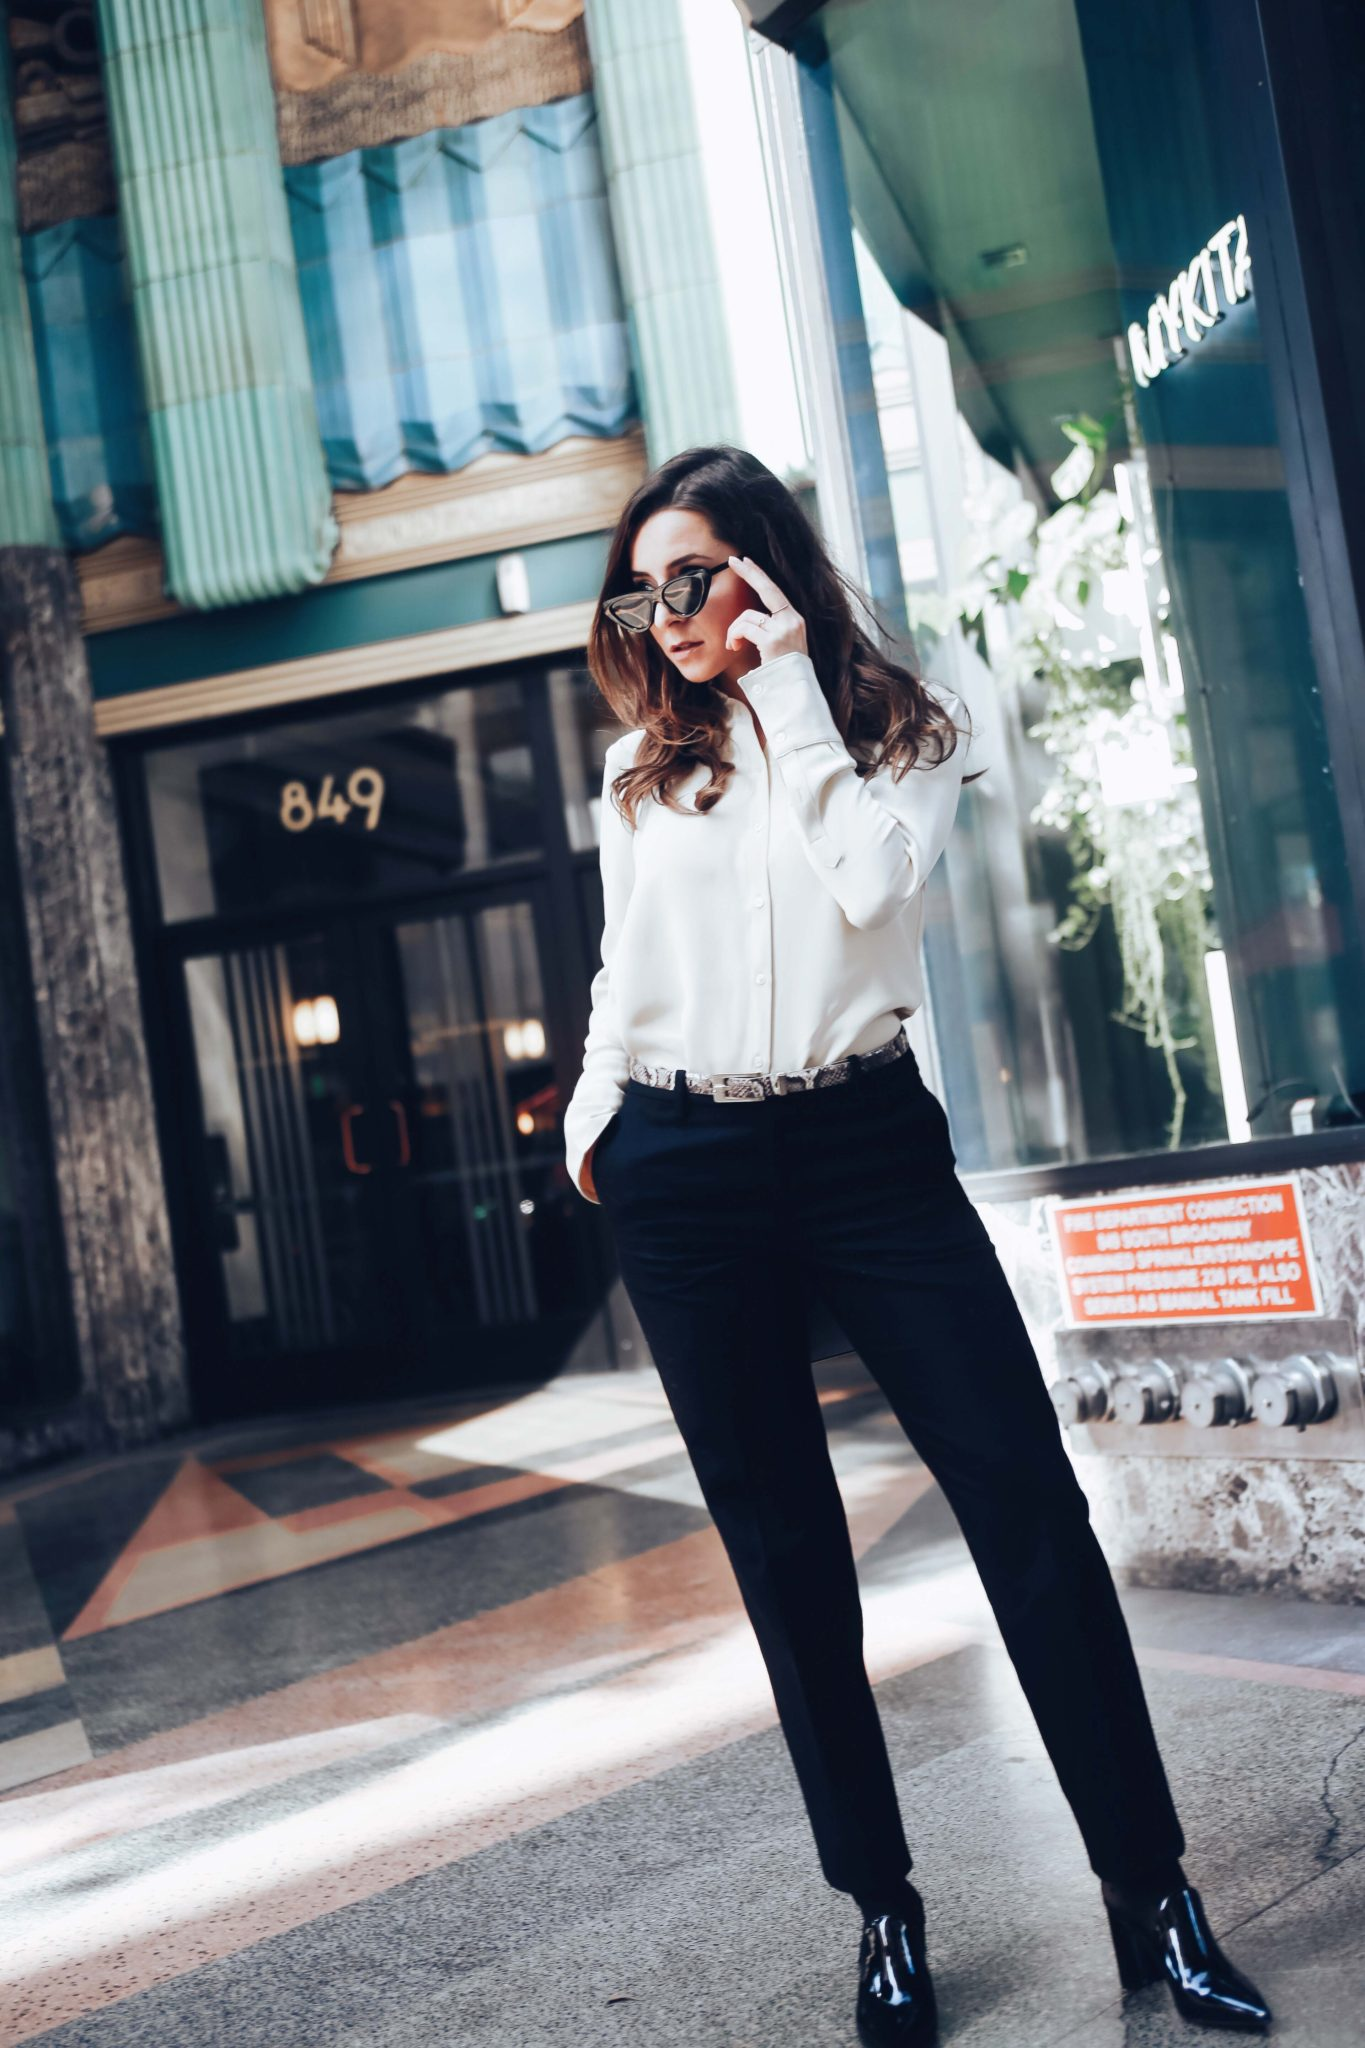 How to wear the business suits for women - Where to buy women suits: SuiStudio review and Check suits trend on Houseofcomil.com. Suits styled by Julia Comil French Fashion Blogger in Los Angeles